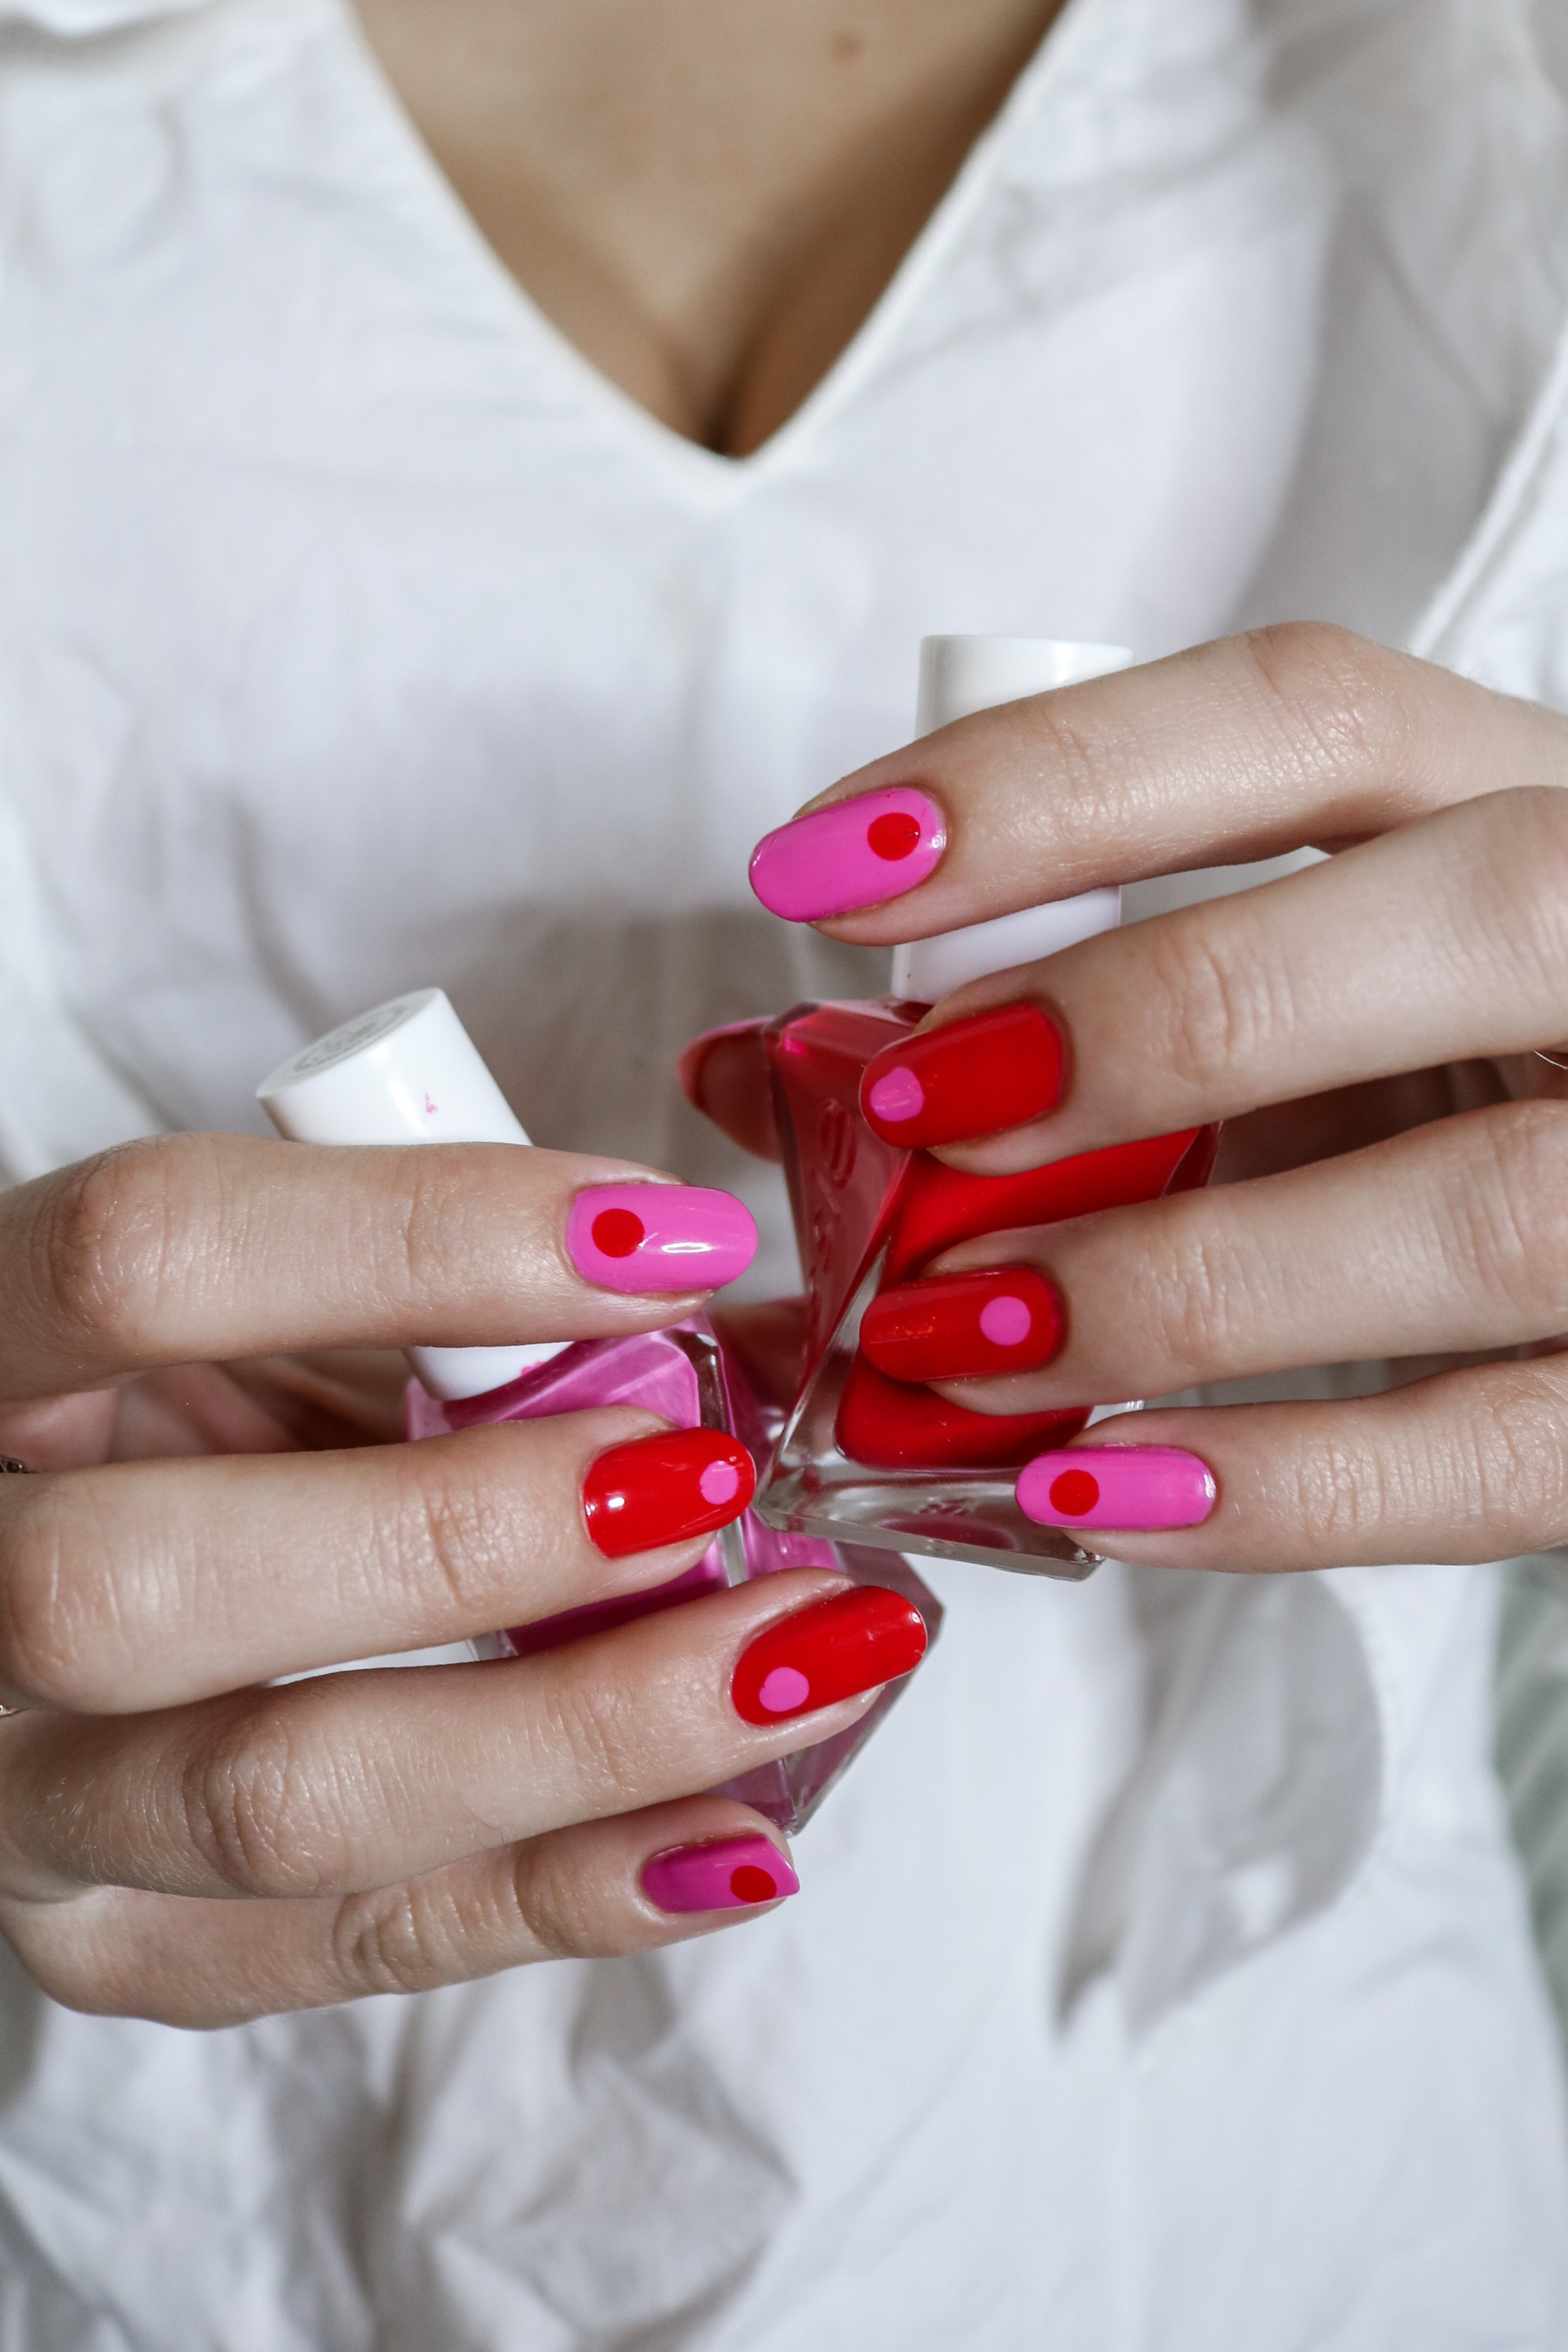 The+Hungarian+Brunette+Red+and+Pink+30+second+Q-tip+nail+art+%282+of+3%29.jpg